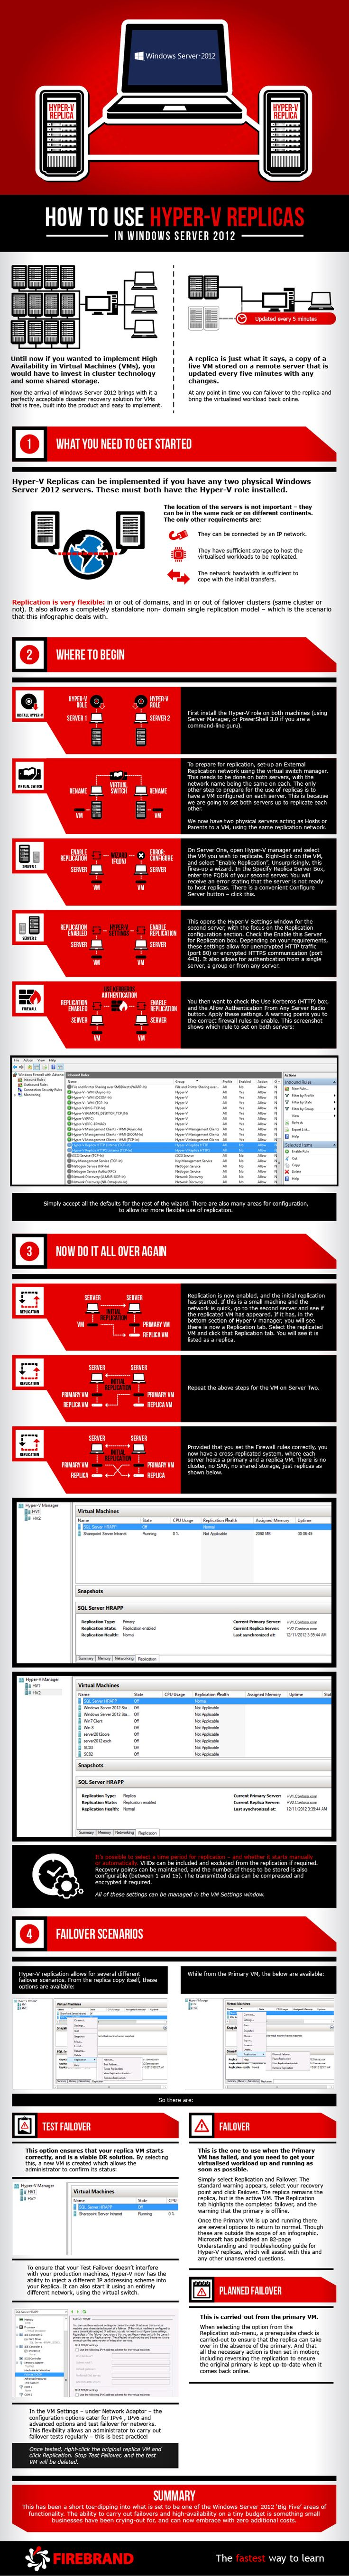 In this Windows Server 2012 Infographic we take a look at how to use Hyper-V Replicas. Hyper-V forms one of the five big new features released with Wi